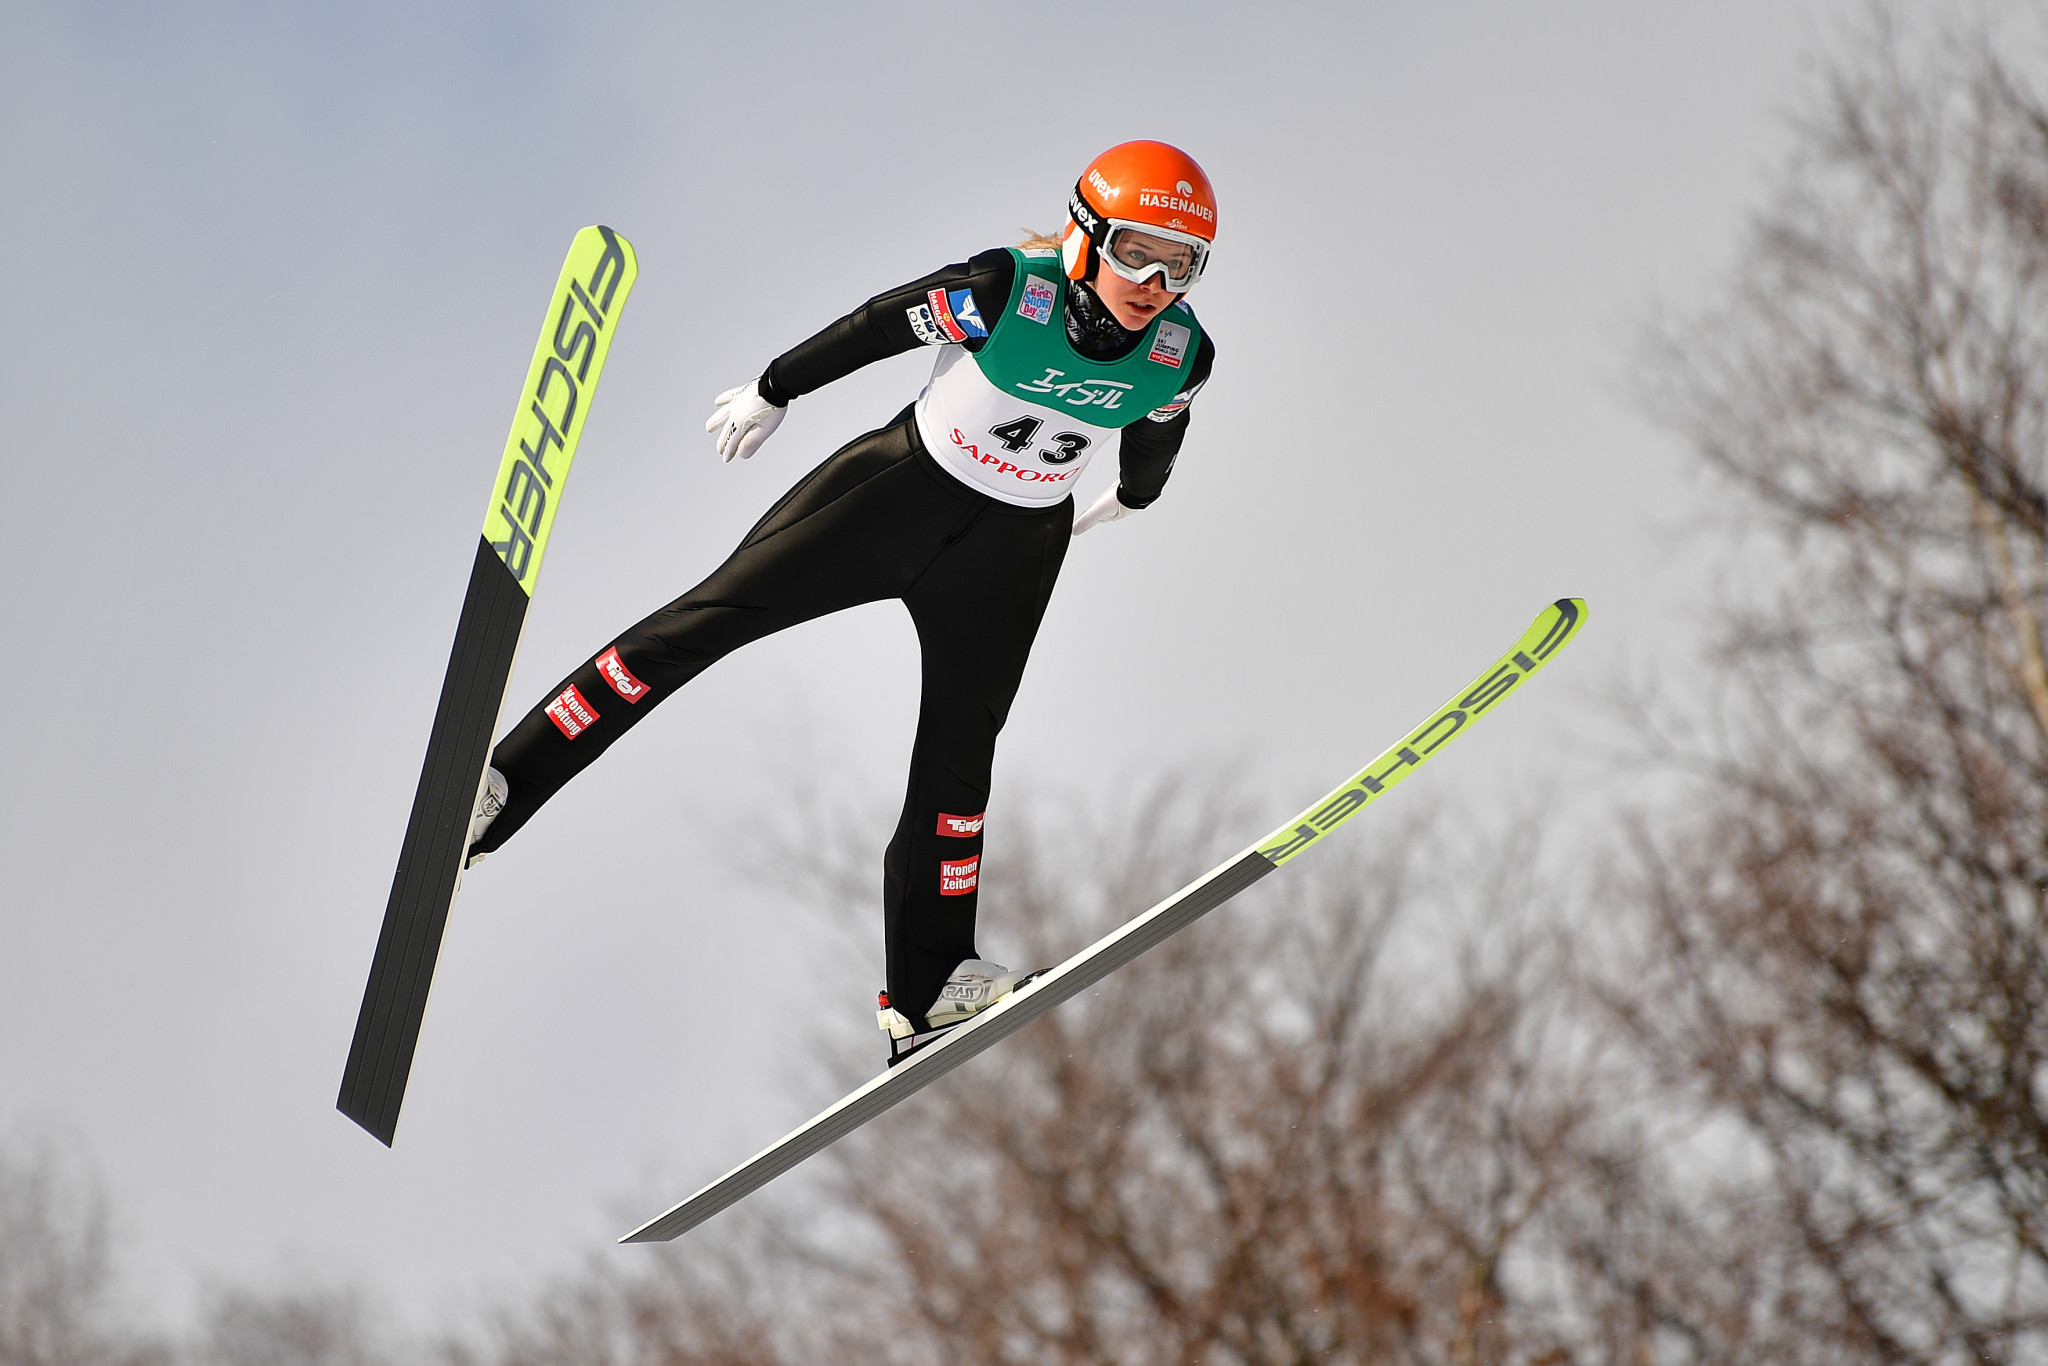 Kramer leads qualifying at FIS Ski Jumping World Cup in Zao